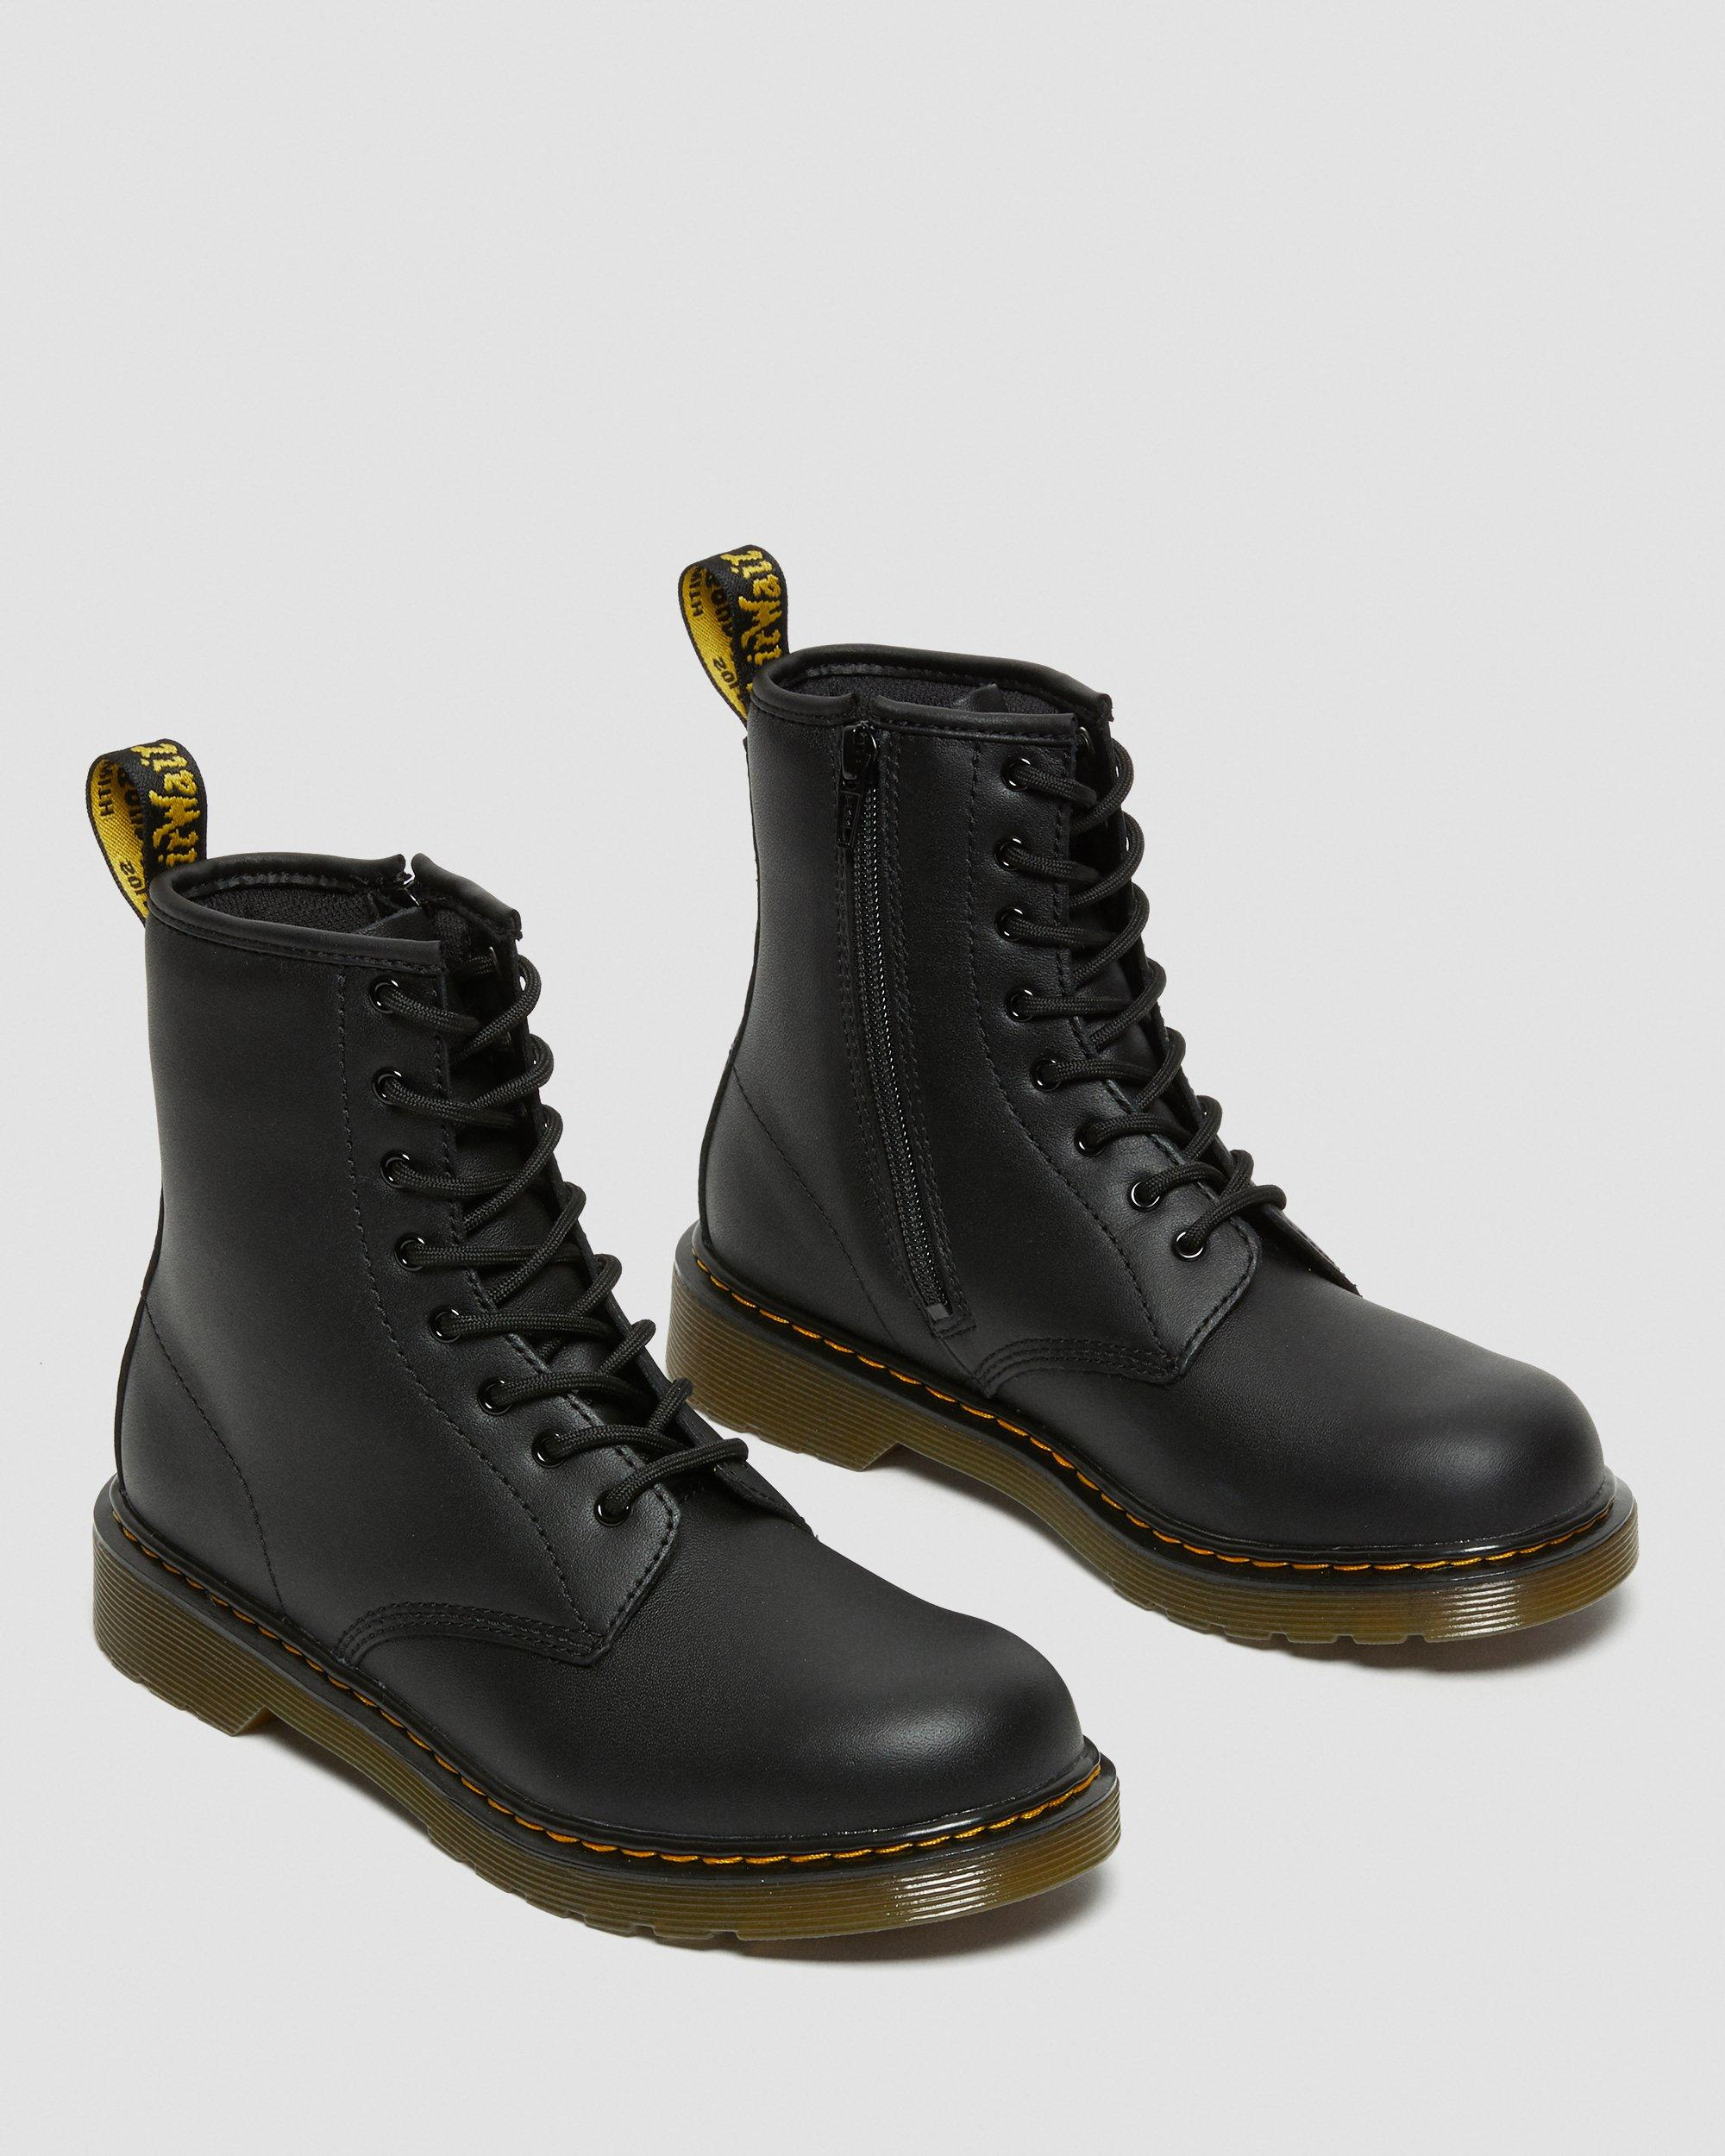 YOUTH 1460 SOFTY T | Dr. Martens